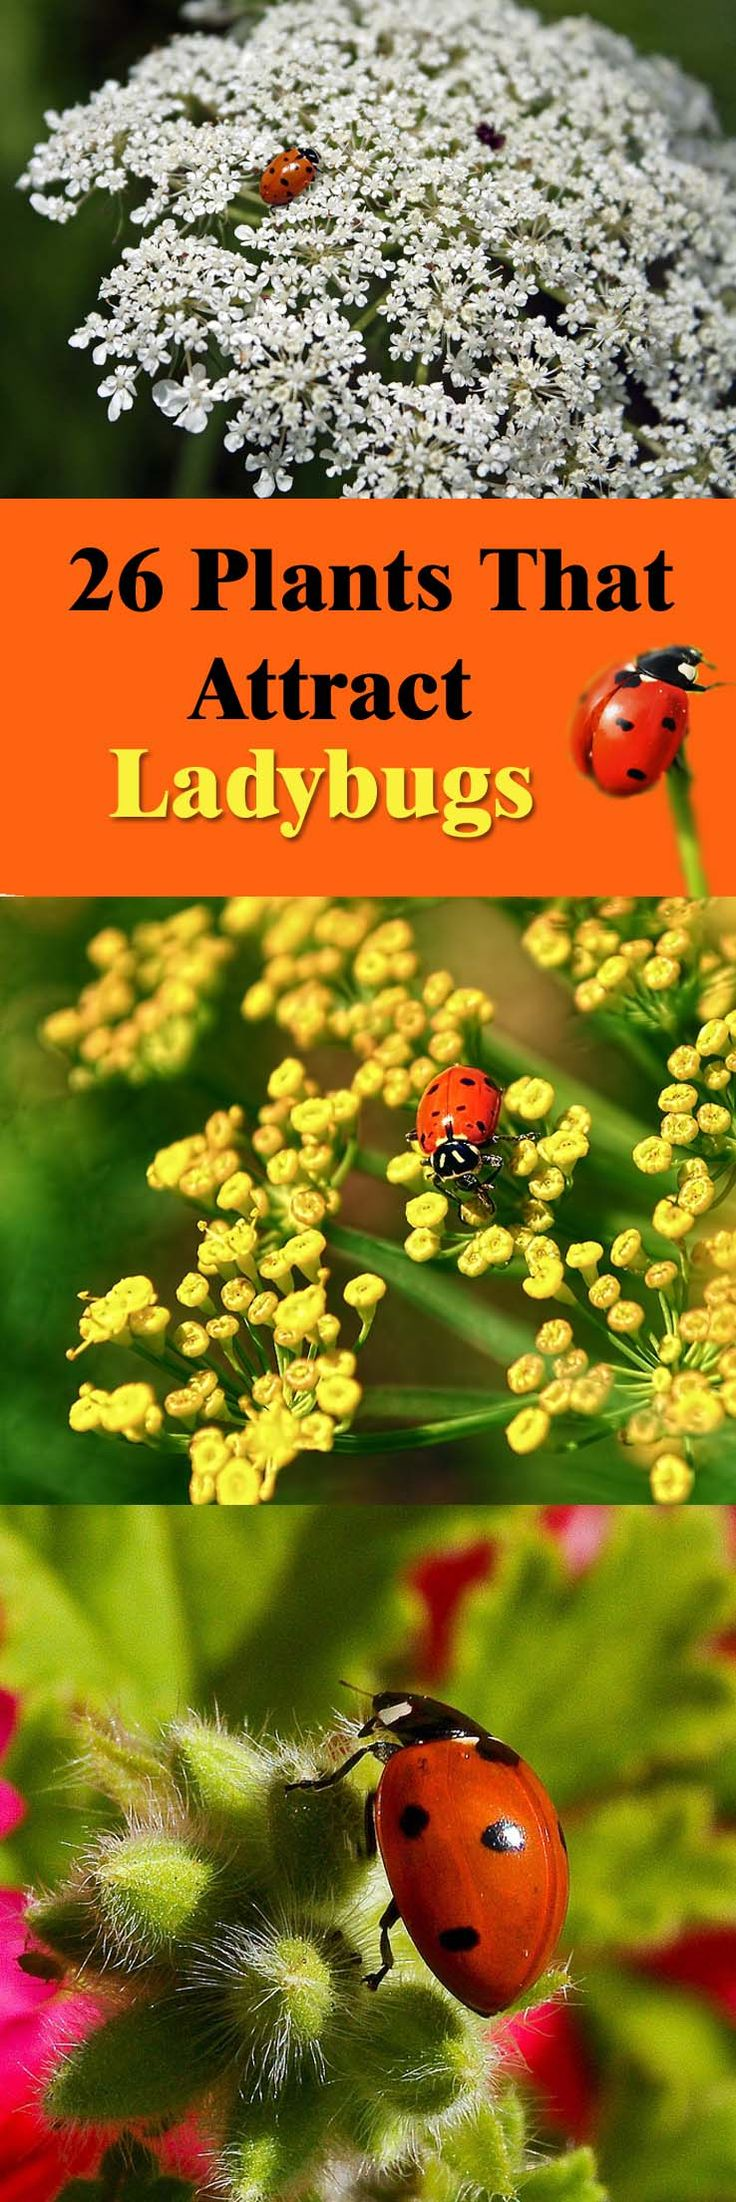 Learn about the plants that attract ladybugs, ladybugs are one of the most beneficial insects that much that you should invite them in your garden to repel pests away.